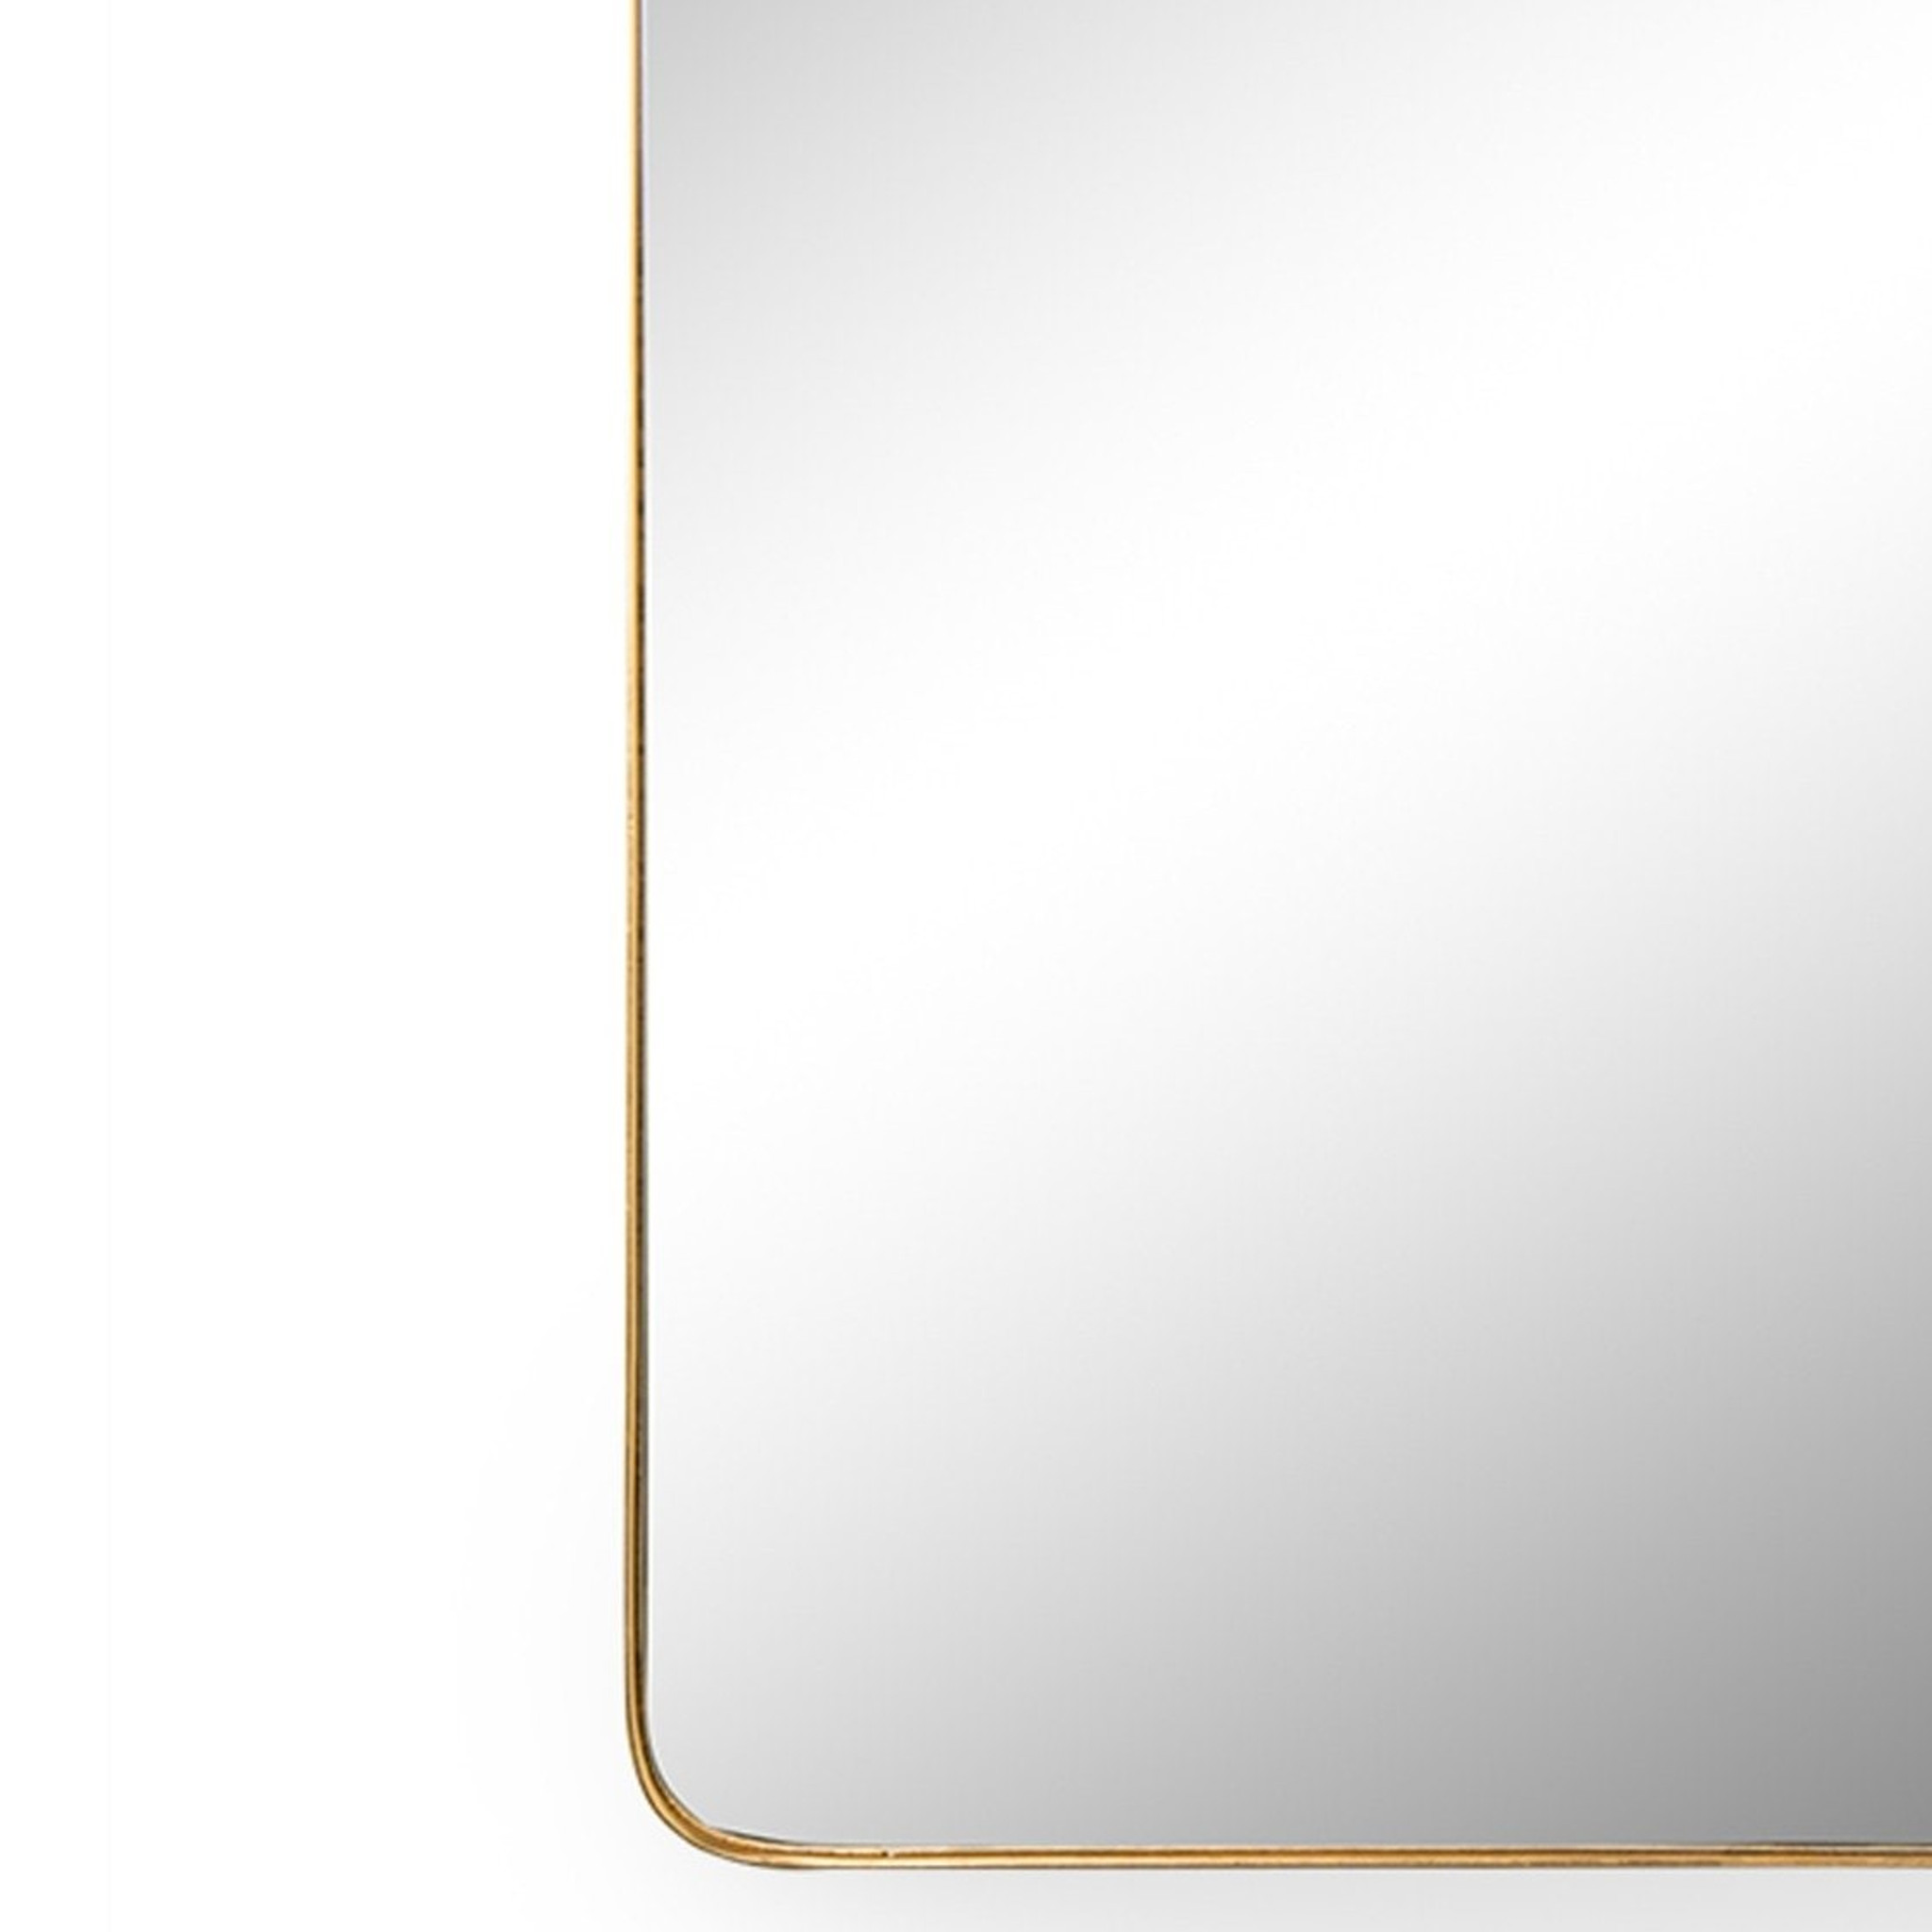 gold Frida bracket clamp top modern rounded corners wall mirror cooper classics racetrack